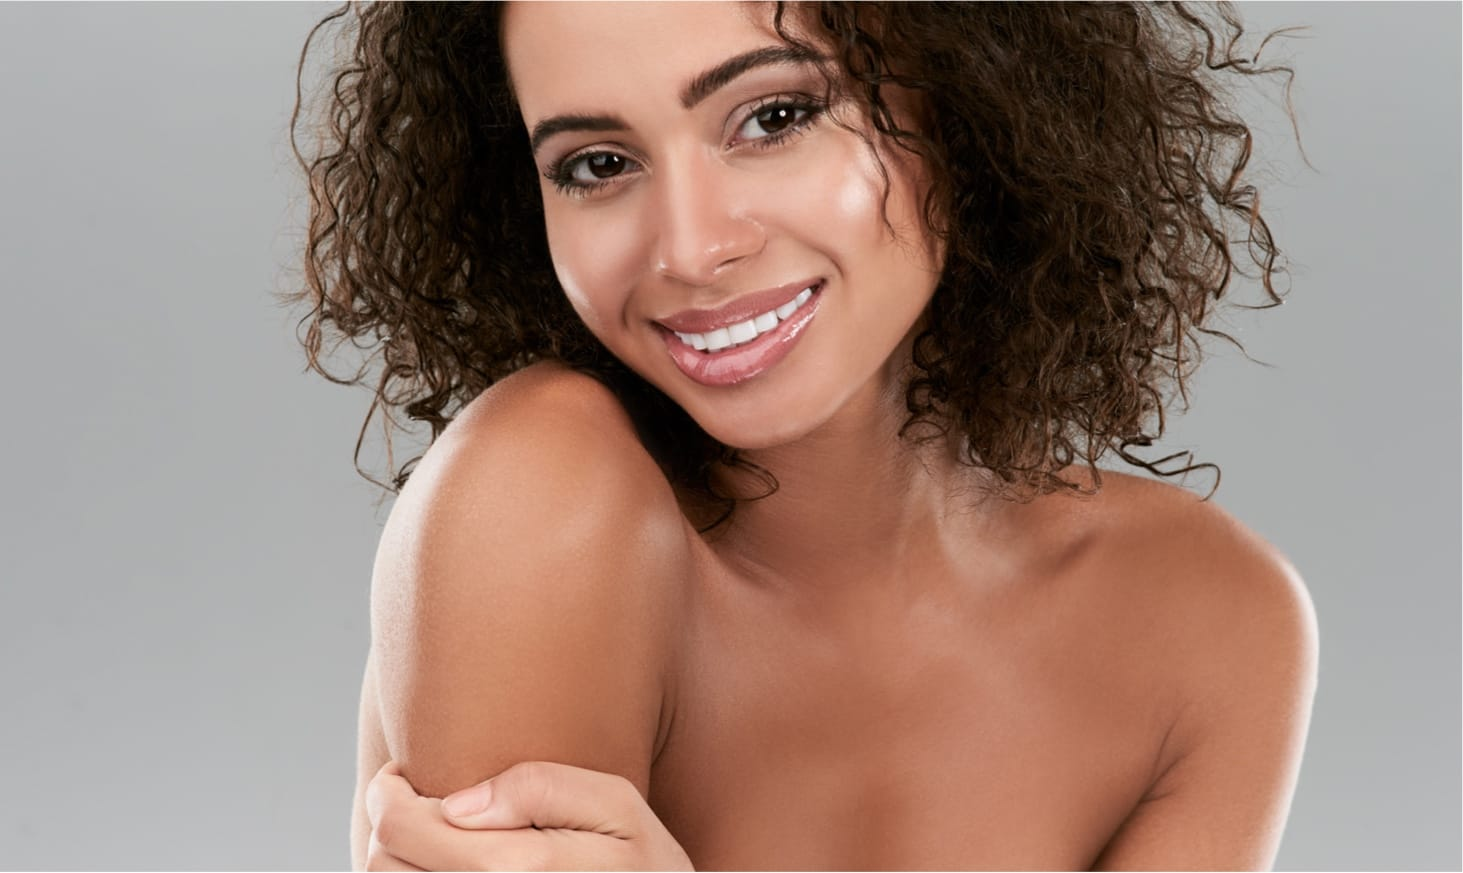 Smiling model with curly hair